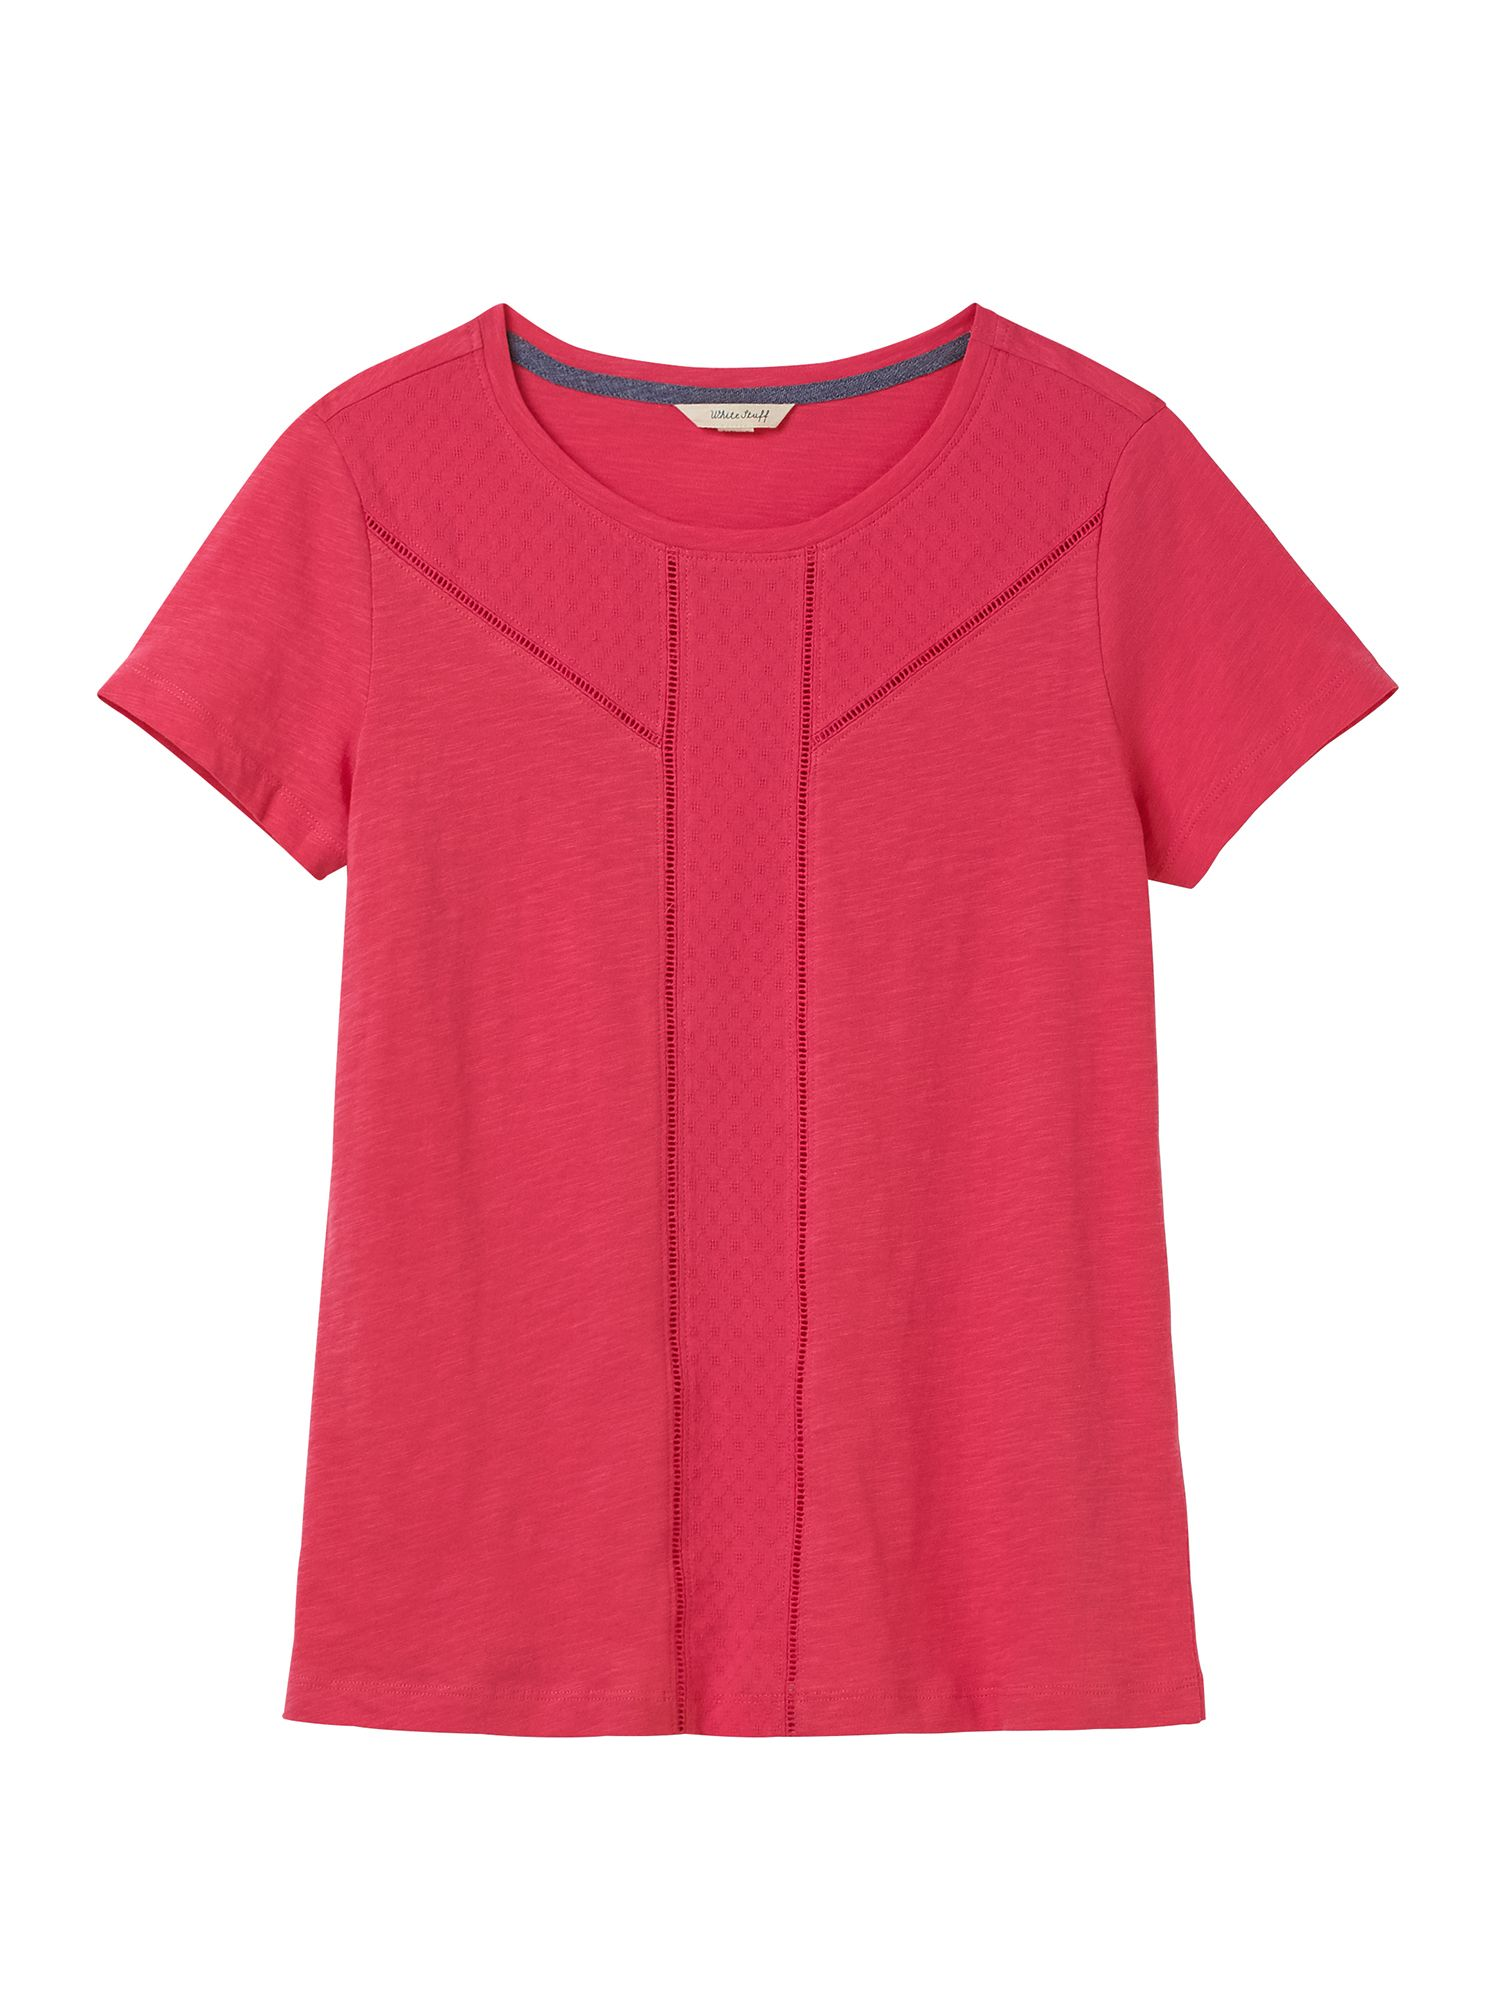 White Stuff Amelie Jersey Tee, Candy Pink